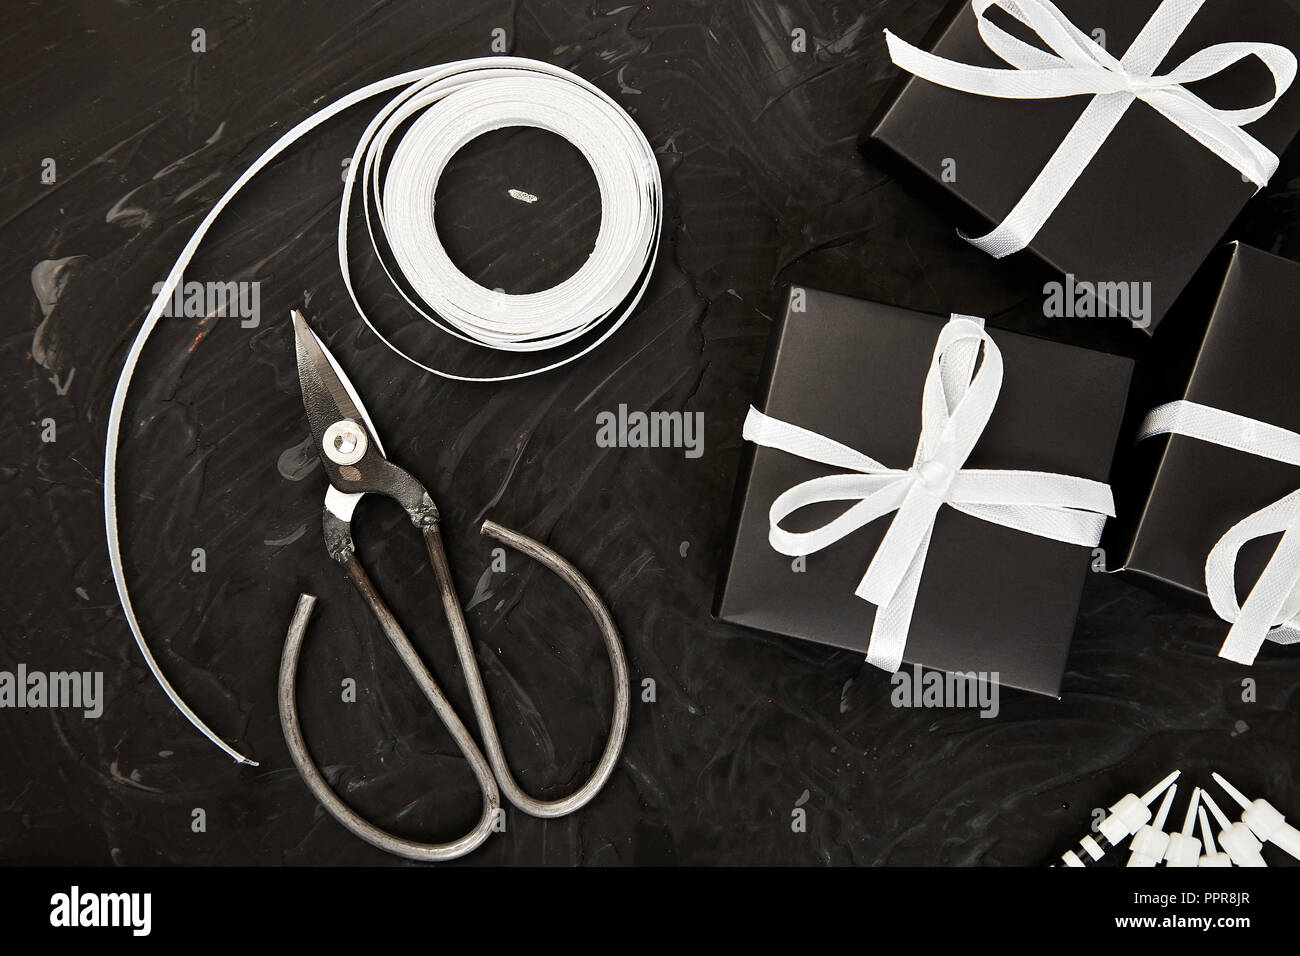 Wrapping Modern Christmas Or Birthday Gifts Presents Gift Boxes In Black And White Color Flat Lay Top View Scissors